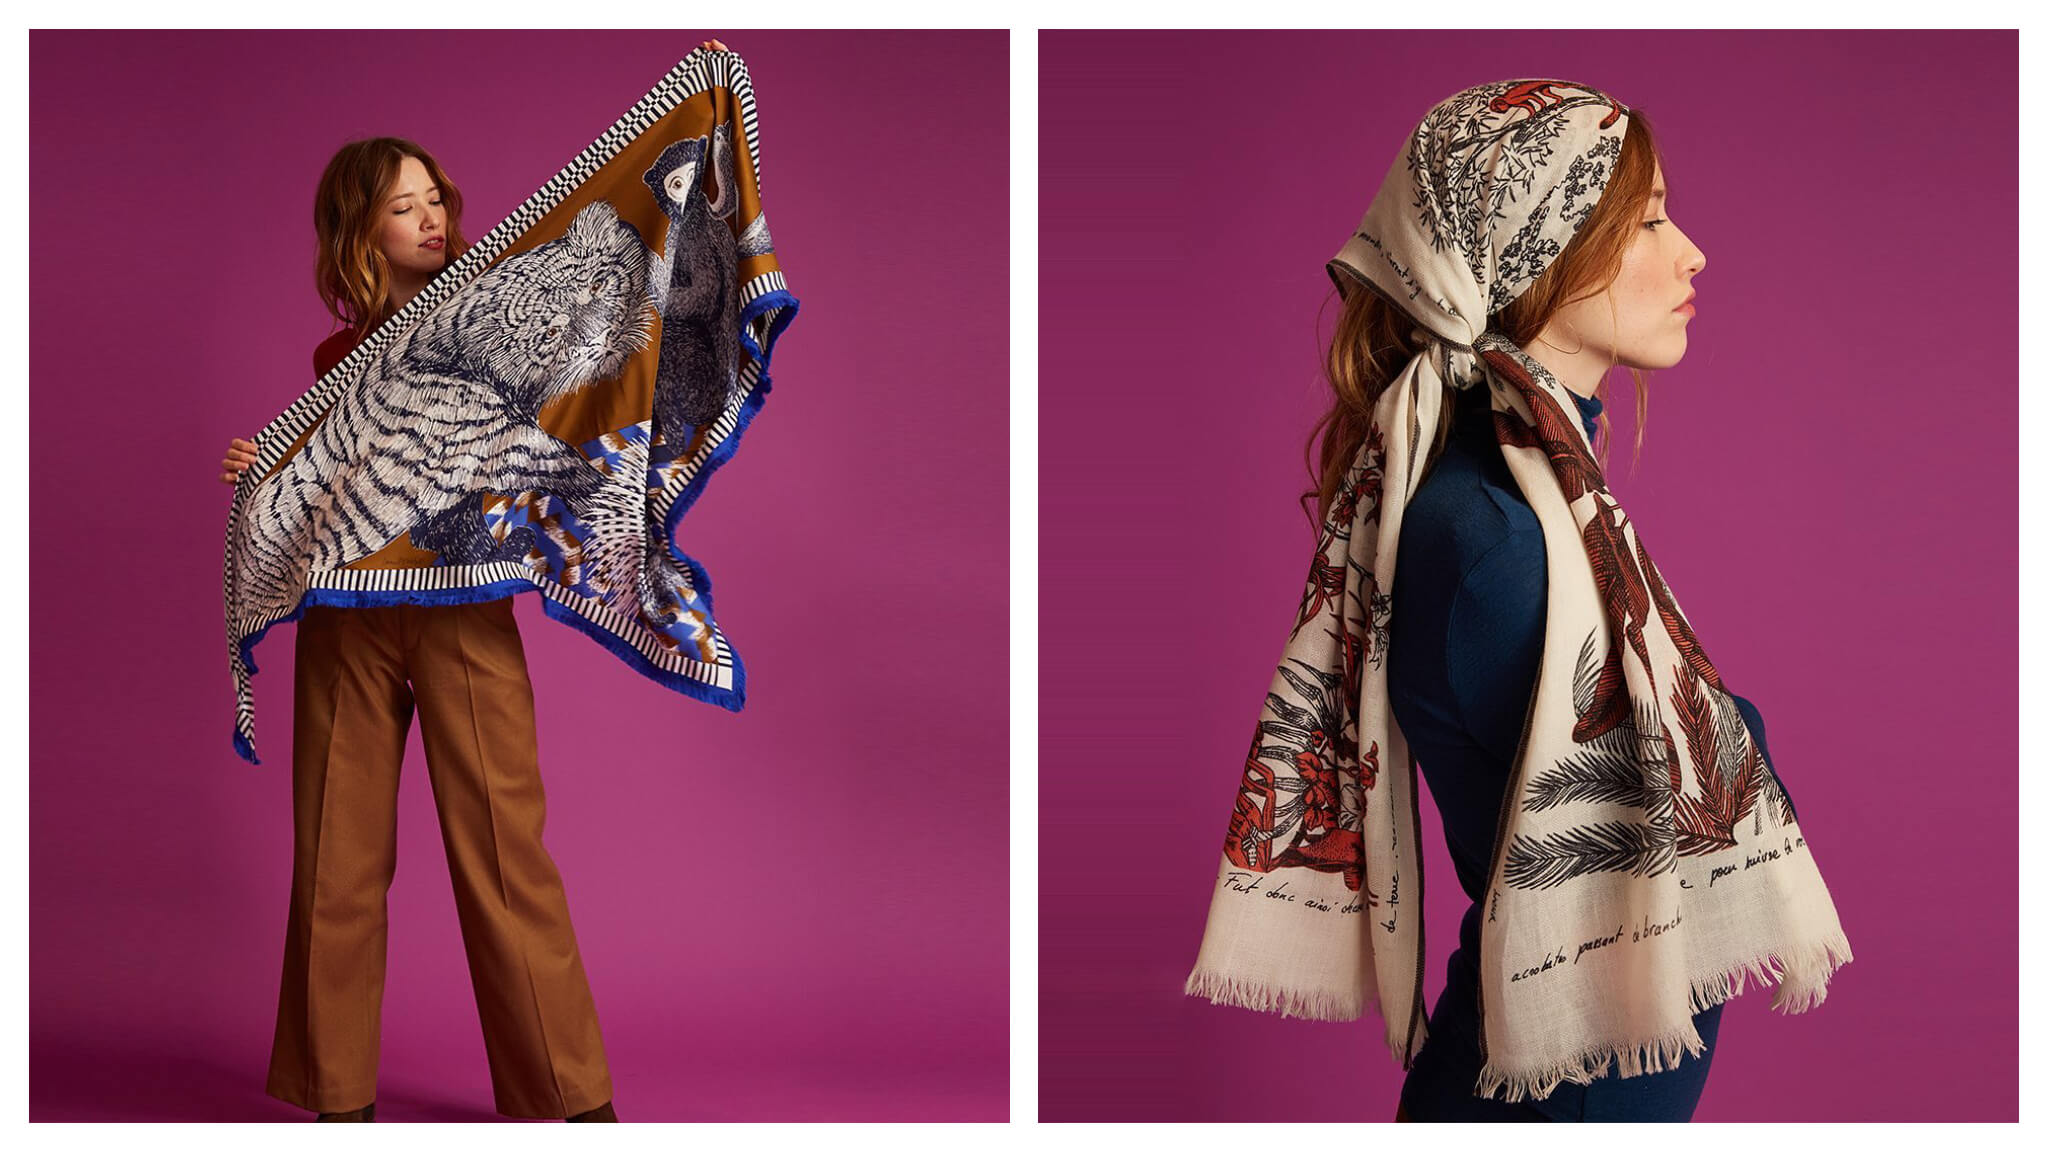 Left: A model stands against a purple background with an animal print scarf opened up in her hands Right: A model pictured in profile with a scarf tied around her head in a bohemian style.